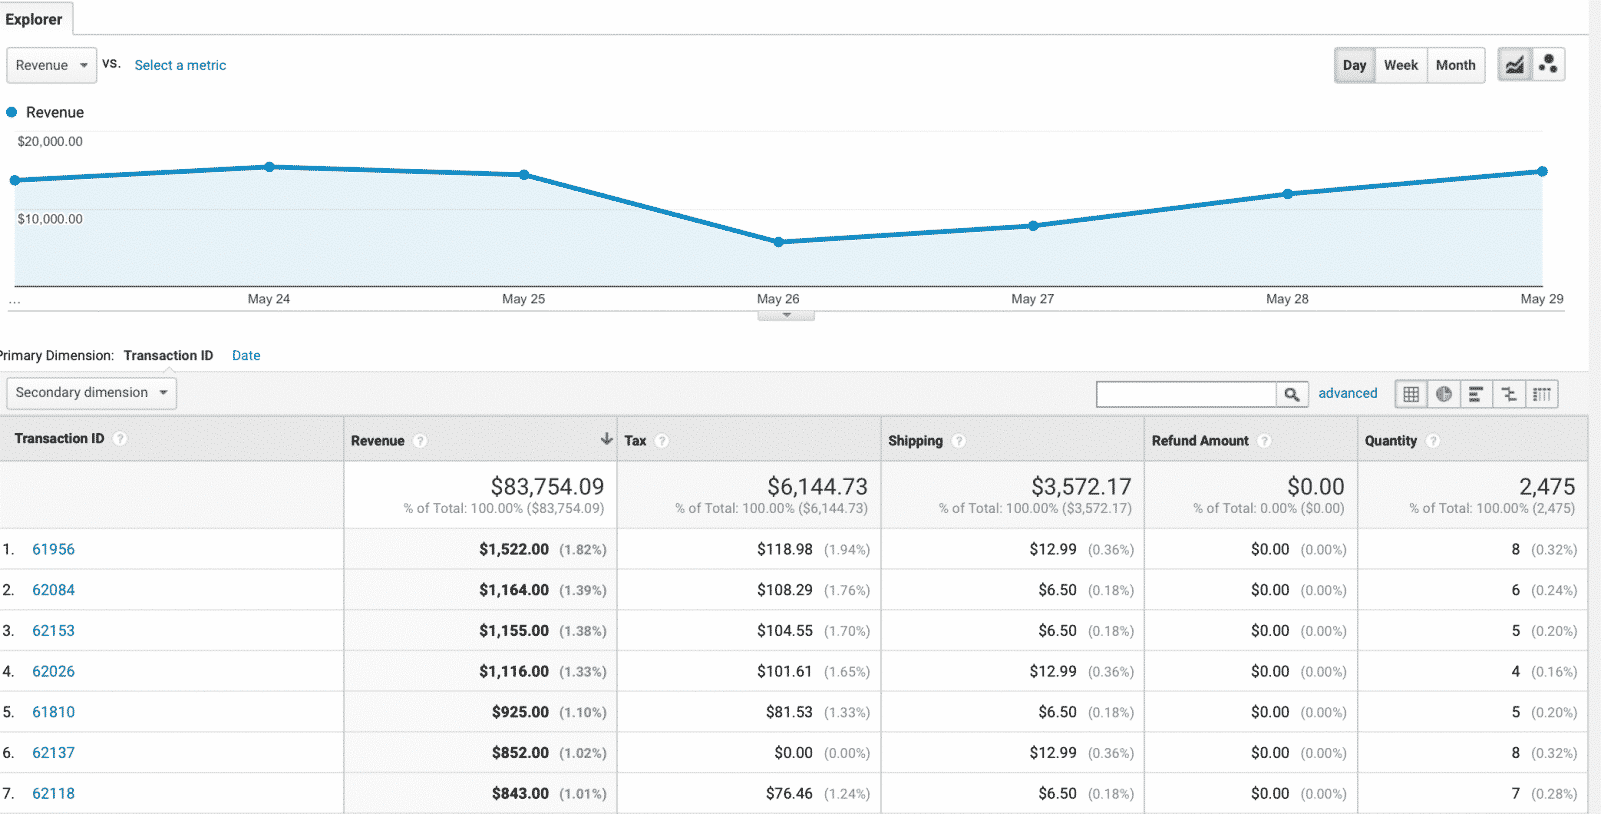 Sales performance tab provides sales and transactional information